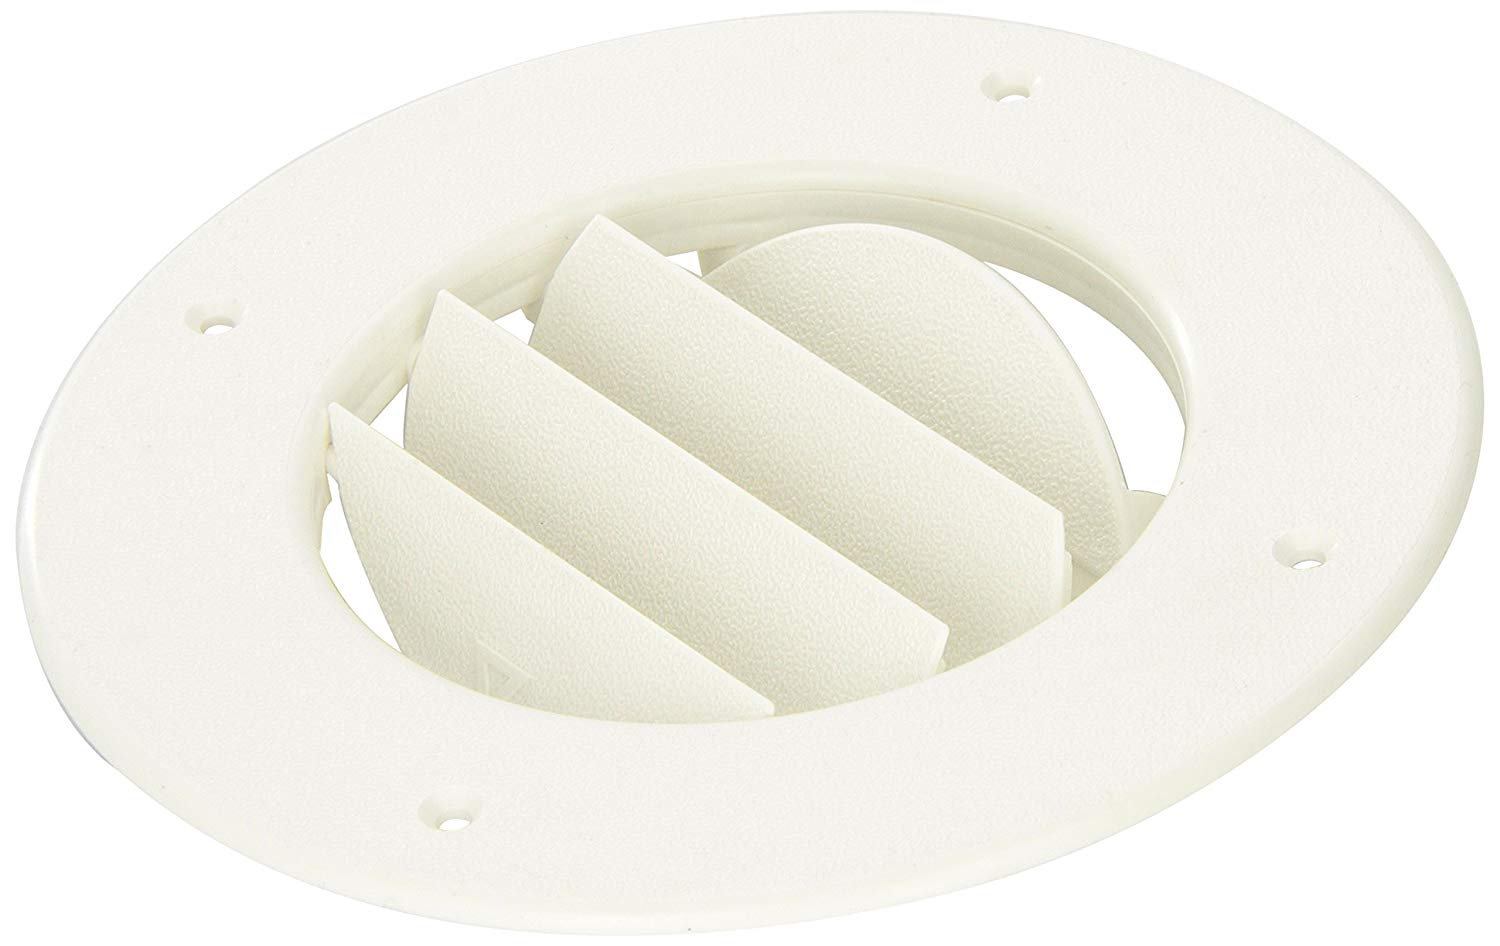 D And W Inc 8840WH Louvered Air Conditioning Ceiling Vent